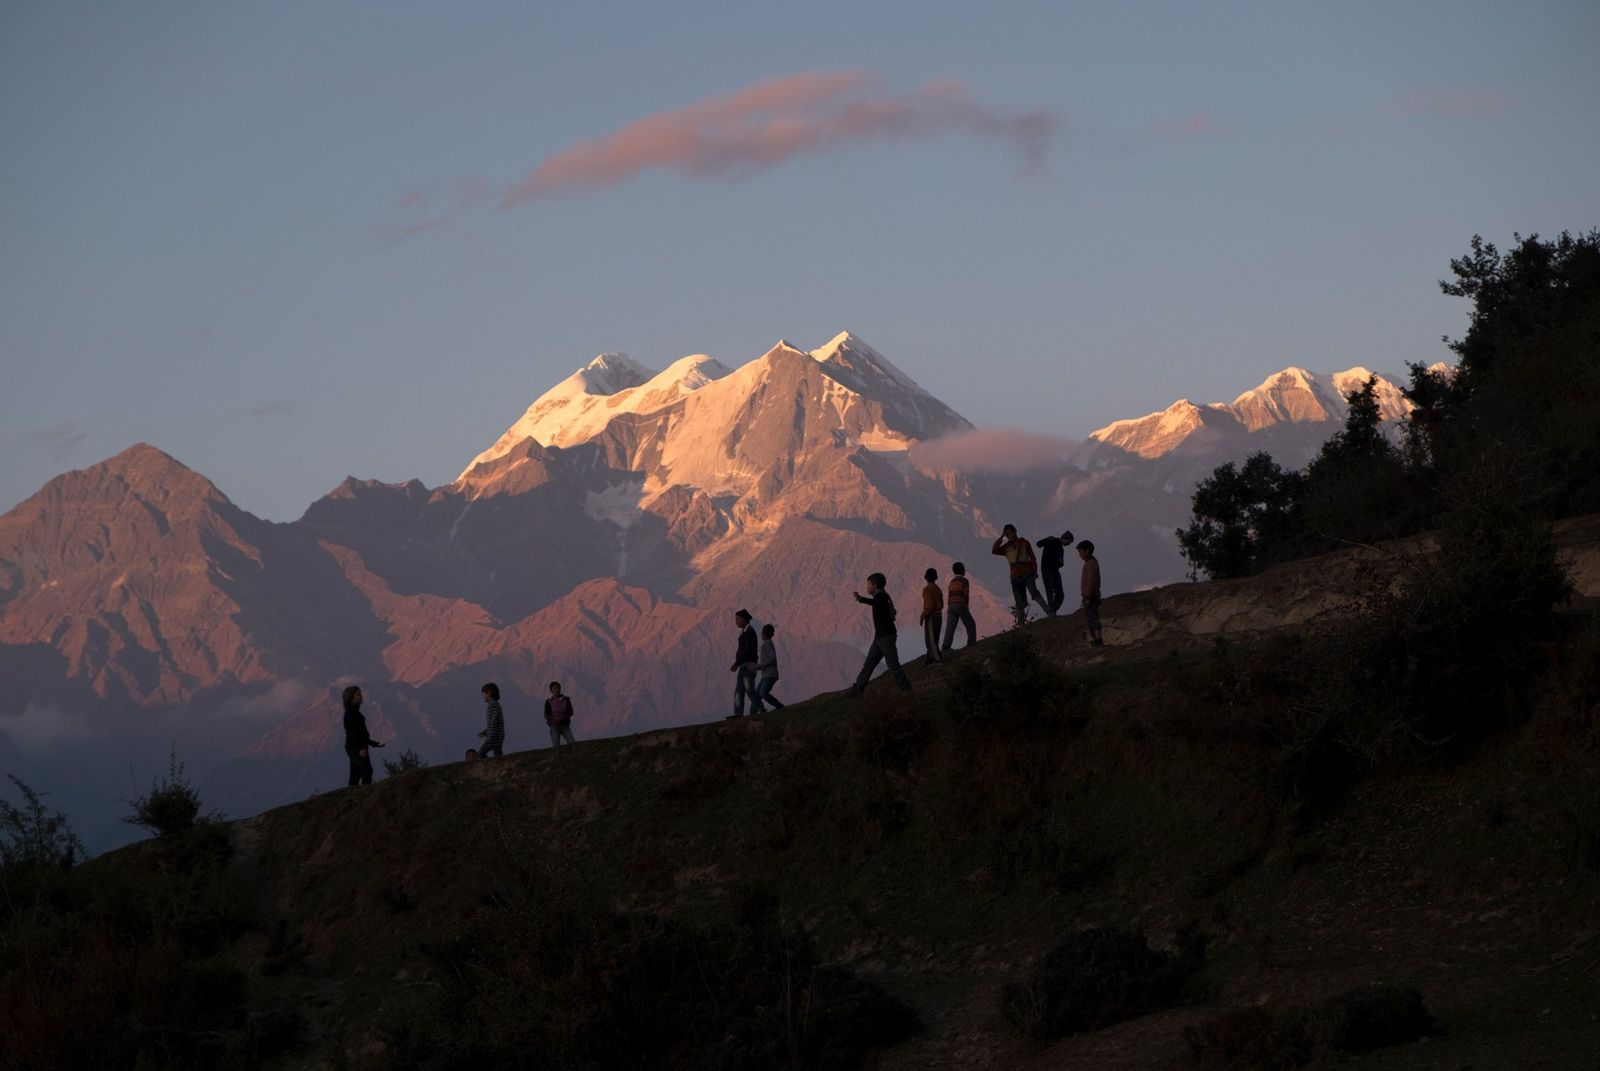 Why the world's most daunting mountains inspire me